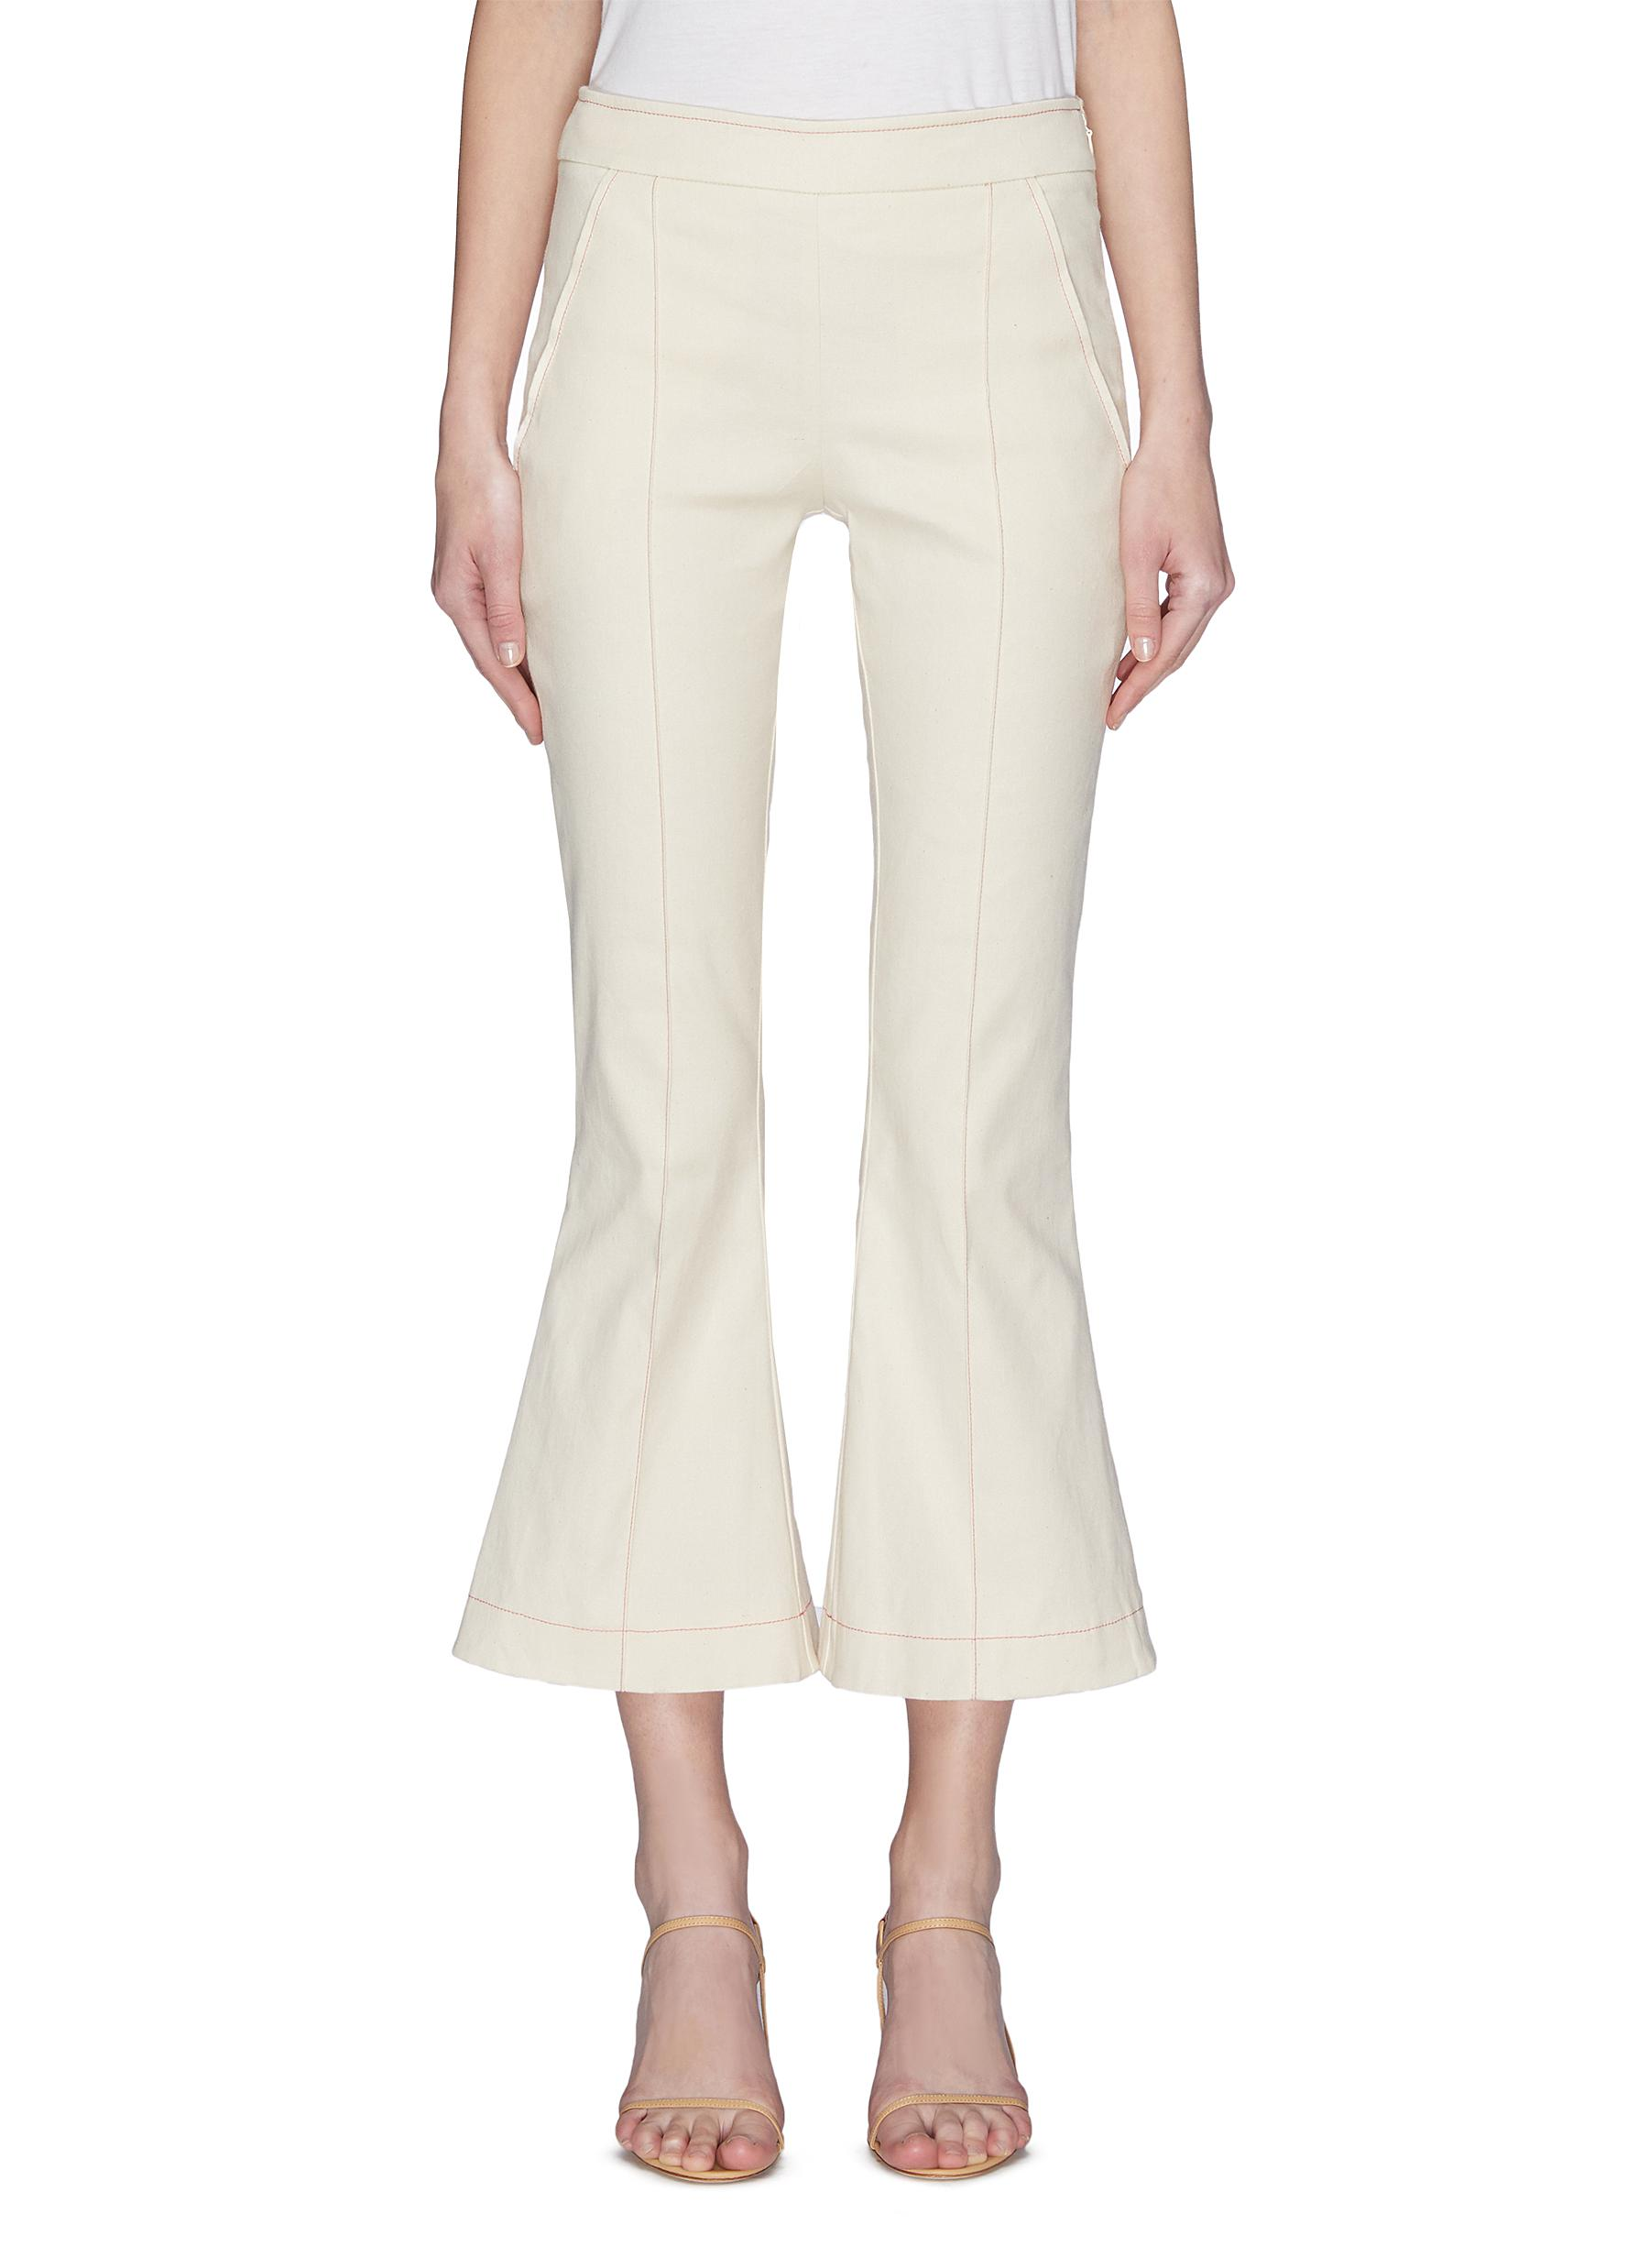 Buy Maggie Marilyn Jeans 'Meet Me at Seven' contrast flared pants